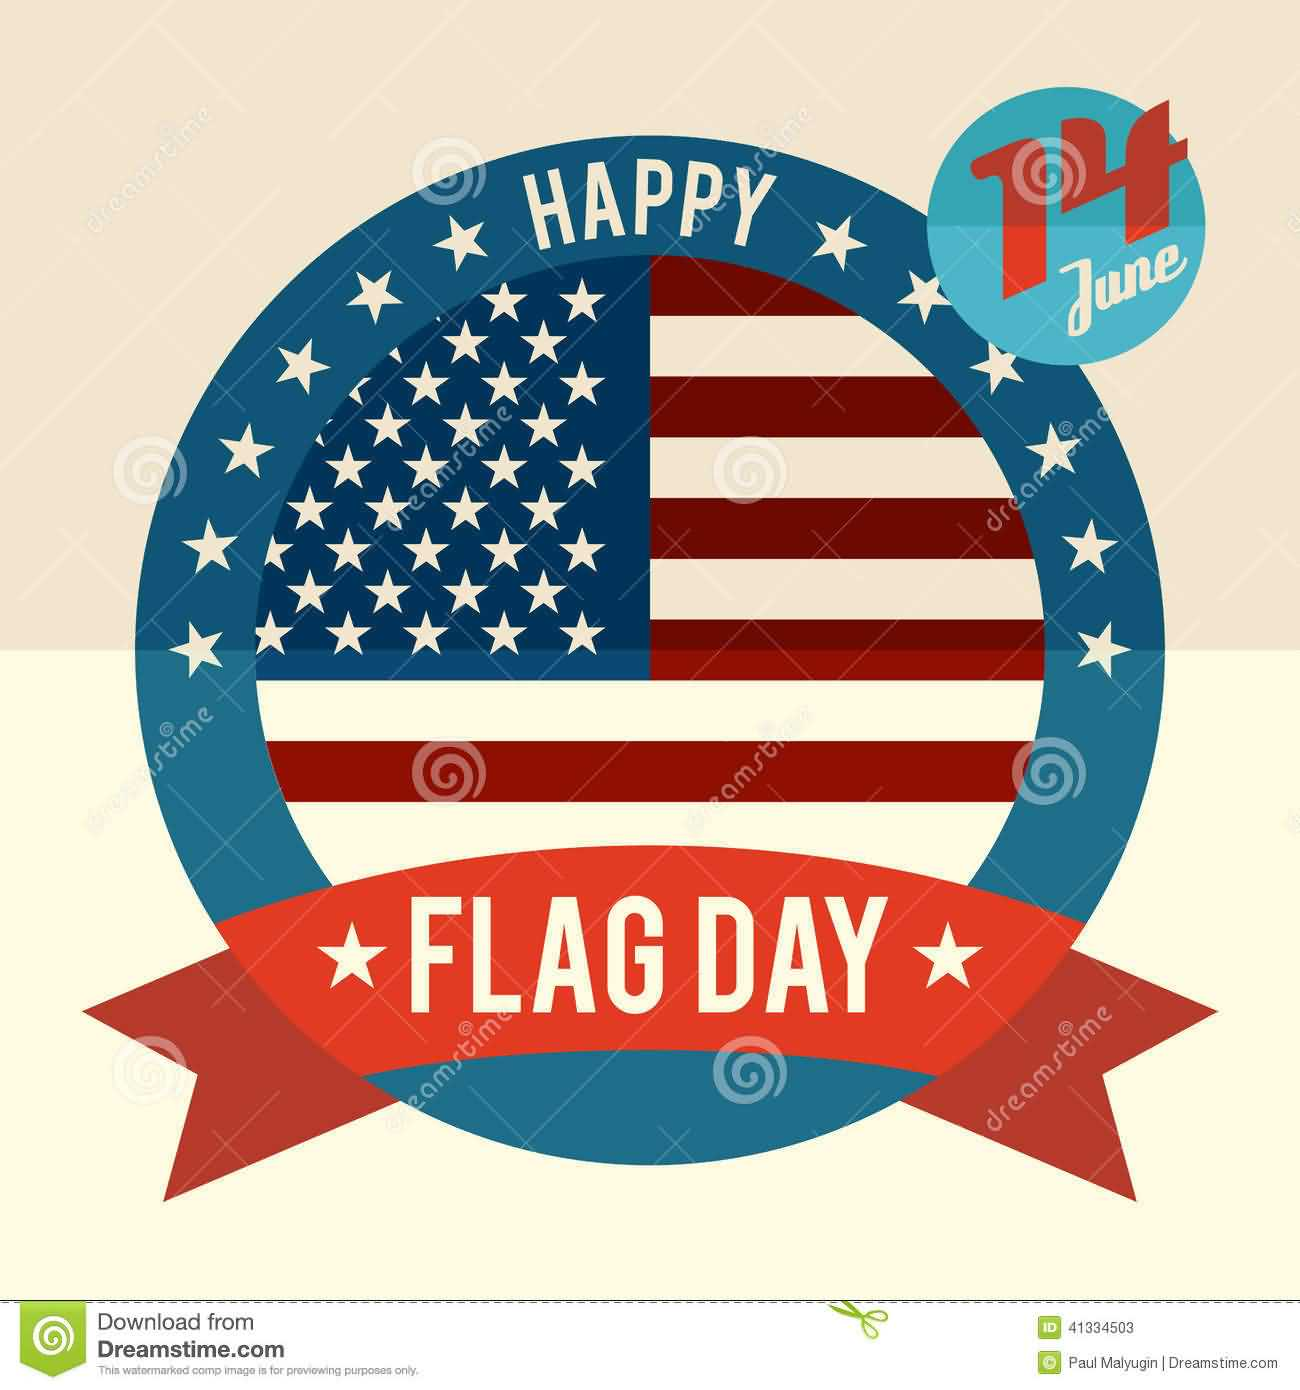 Wishing You Happy Flag Day Enjoy The Day